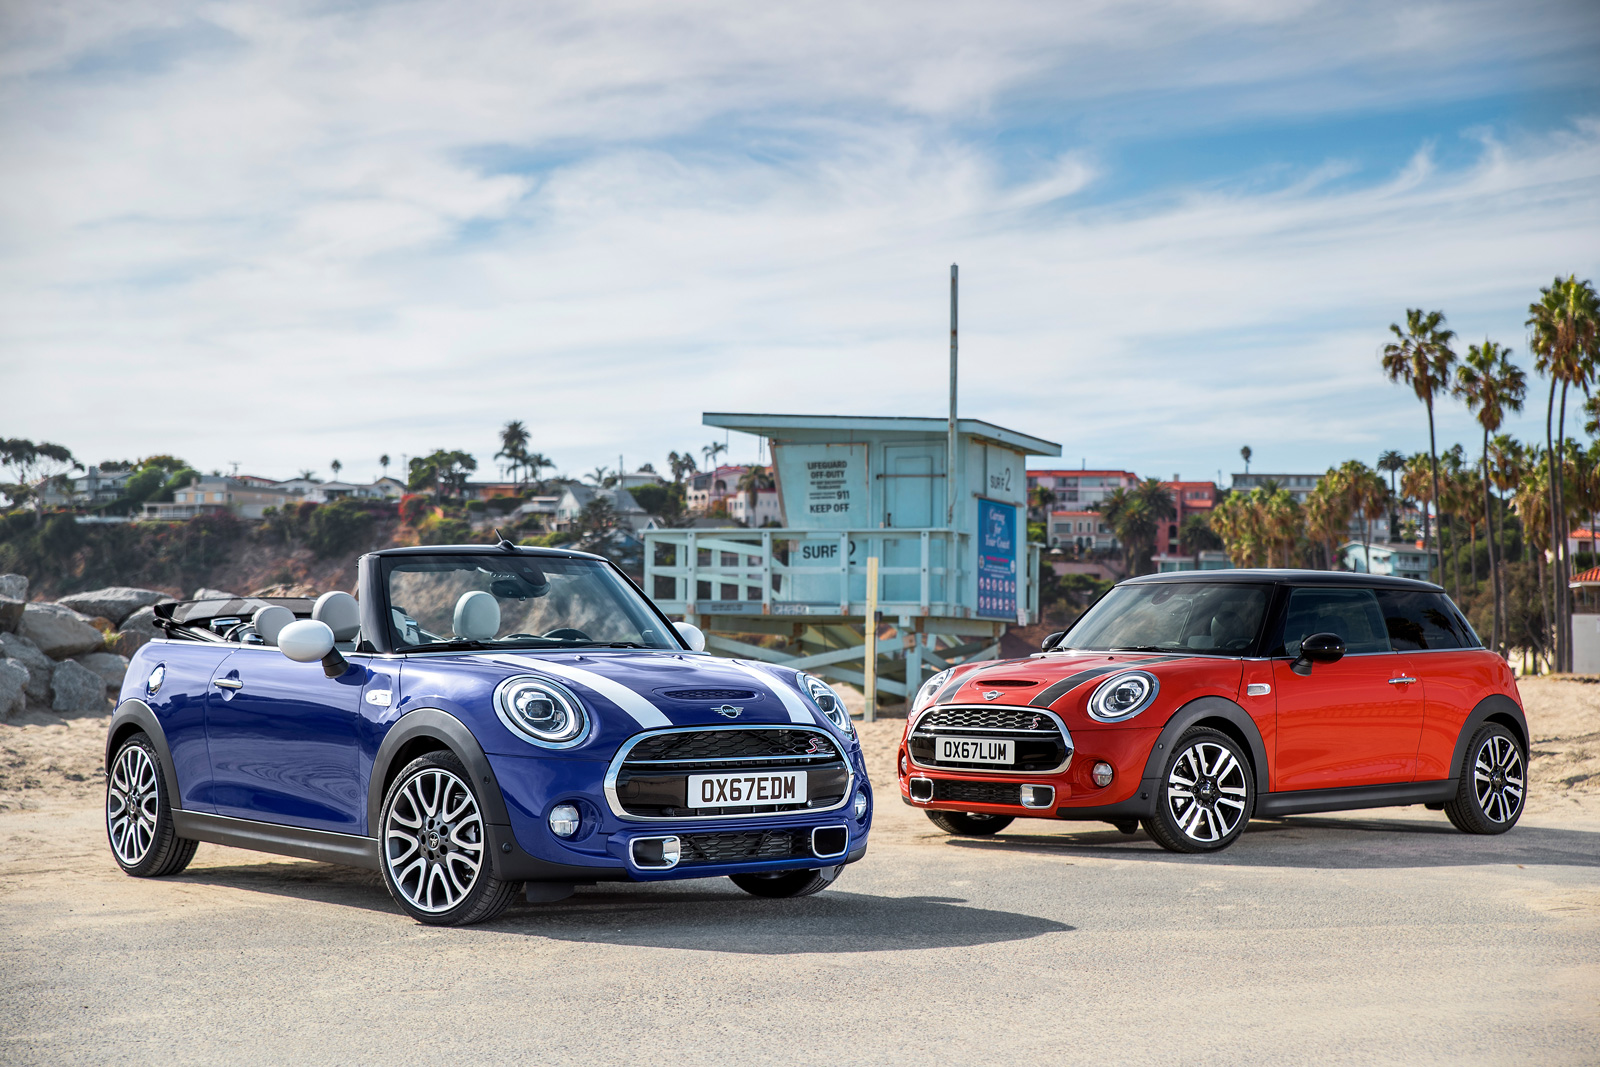 2019 mini cooper lineup receives minor updates autoguide. Black Bedroom Furniture Sets. Home Design Ideas